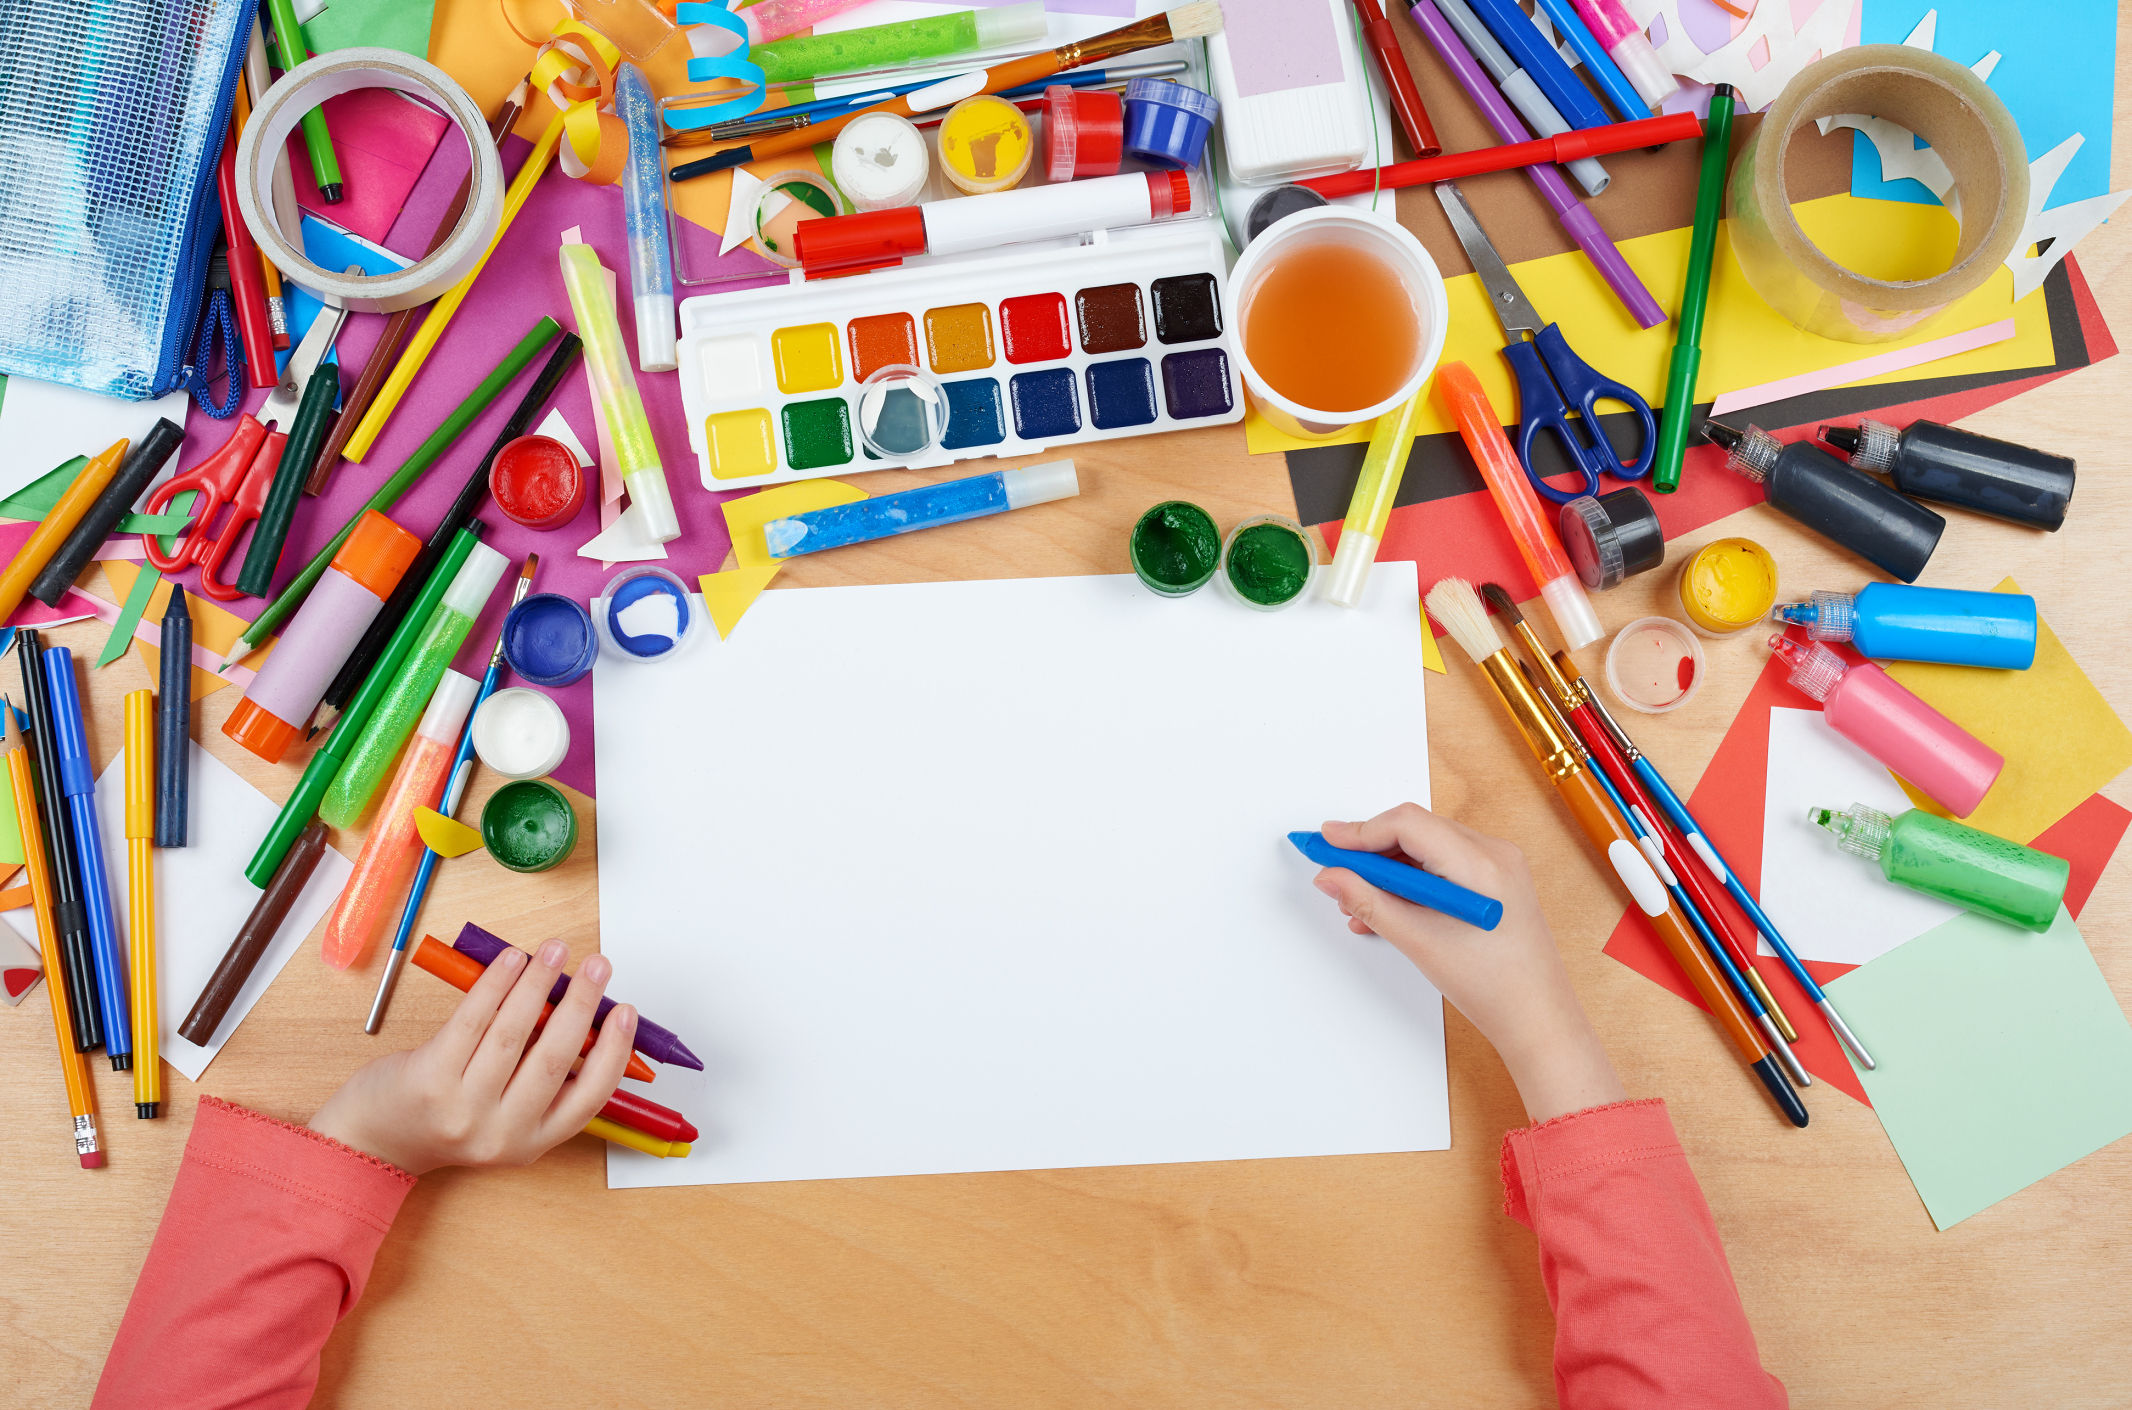 Kids Crafternoon Events Pima County Public Library